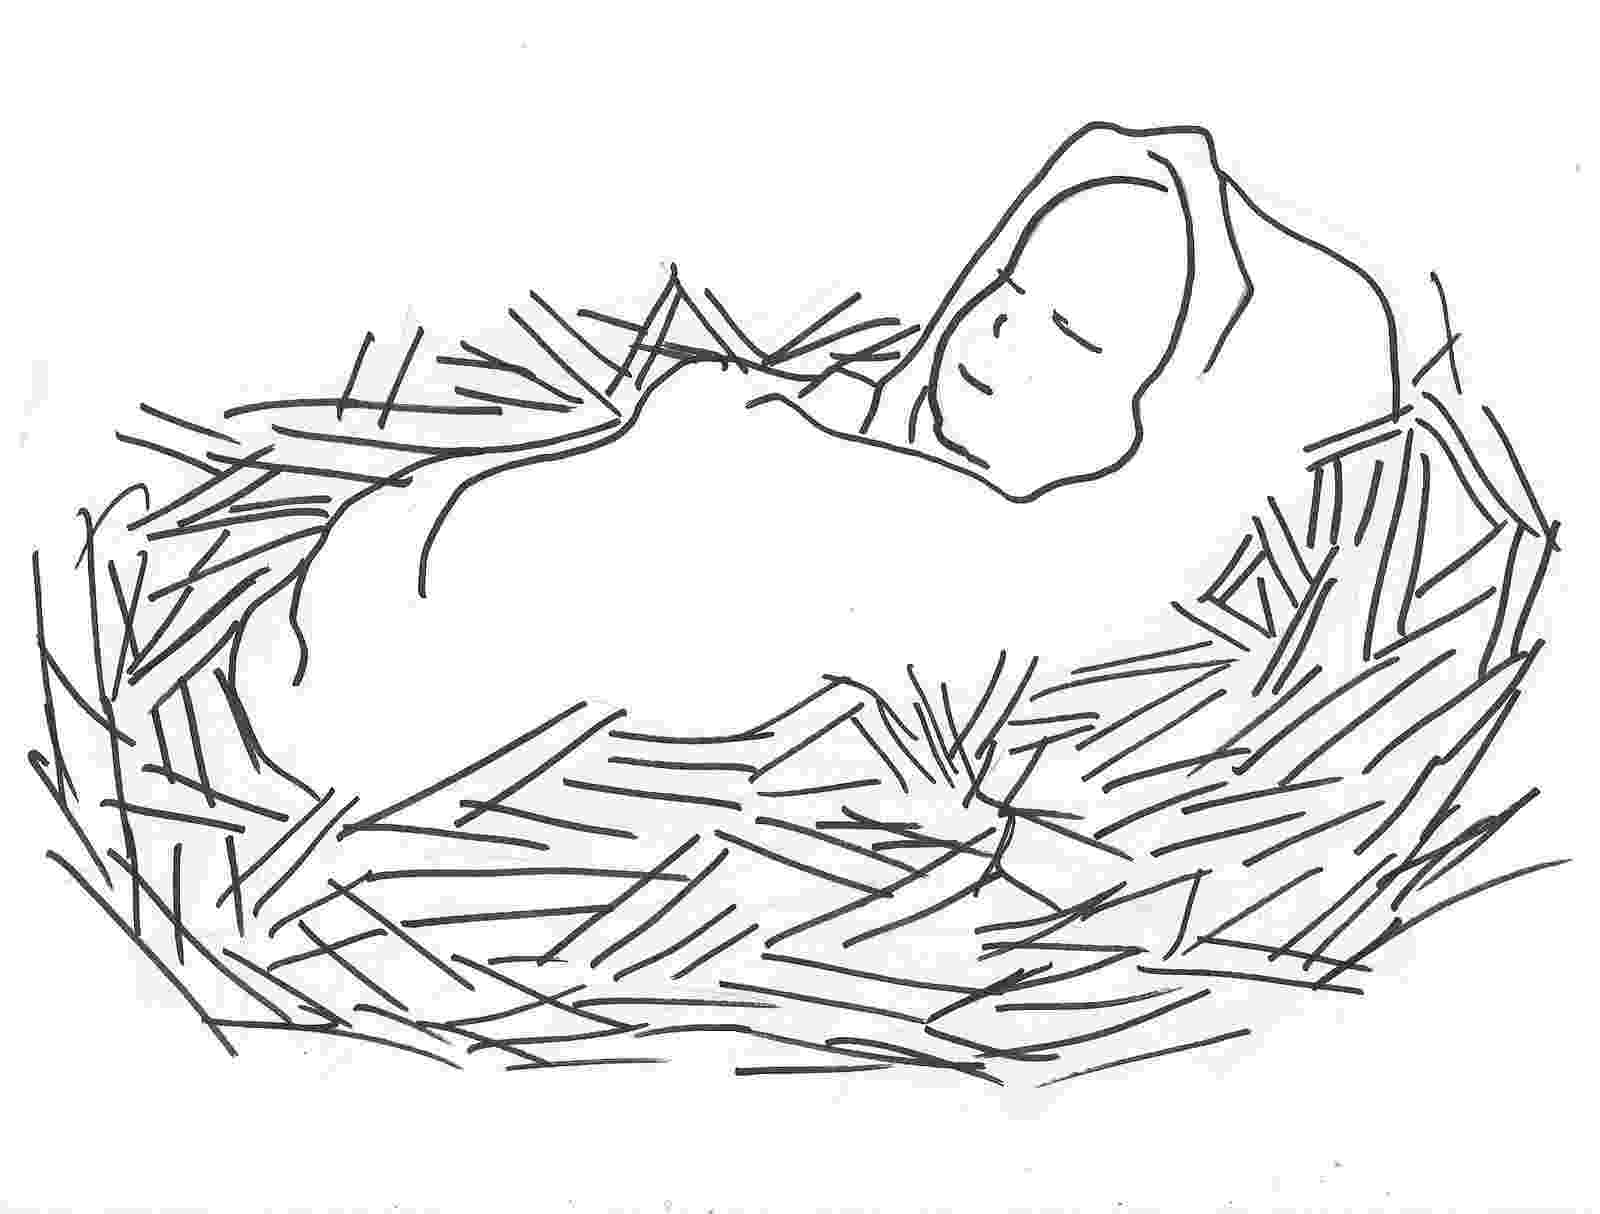 coloring picture of baby jesus in the manger 2011 11 13 free christian wallpapers jesus baby coloring in the picture of manger